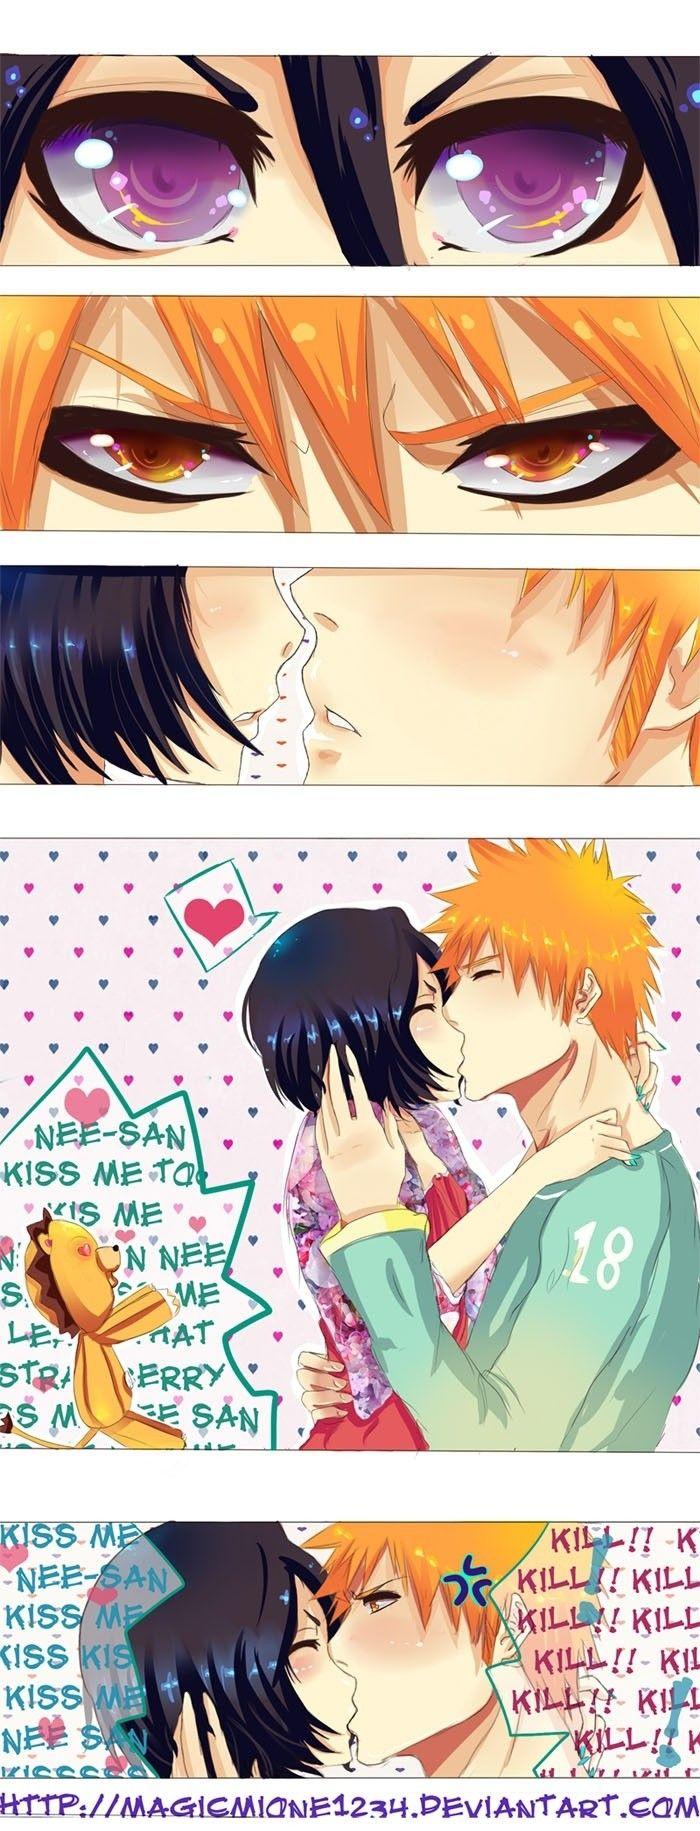 Why the fuck did they ship orihime and ichigo together rukchigo was obviously the ship